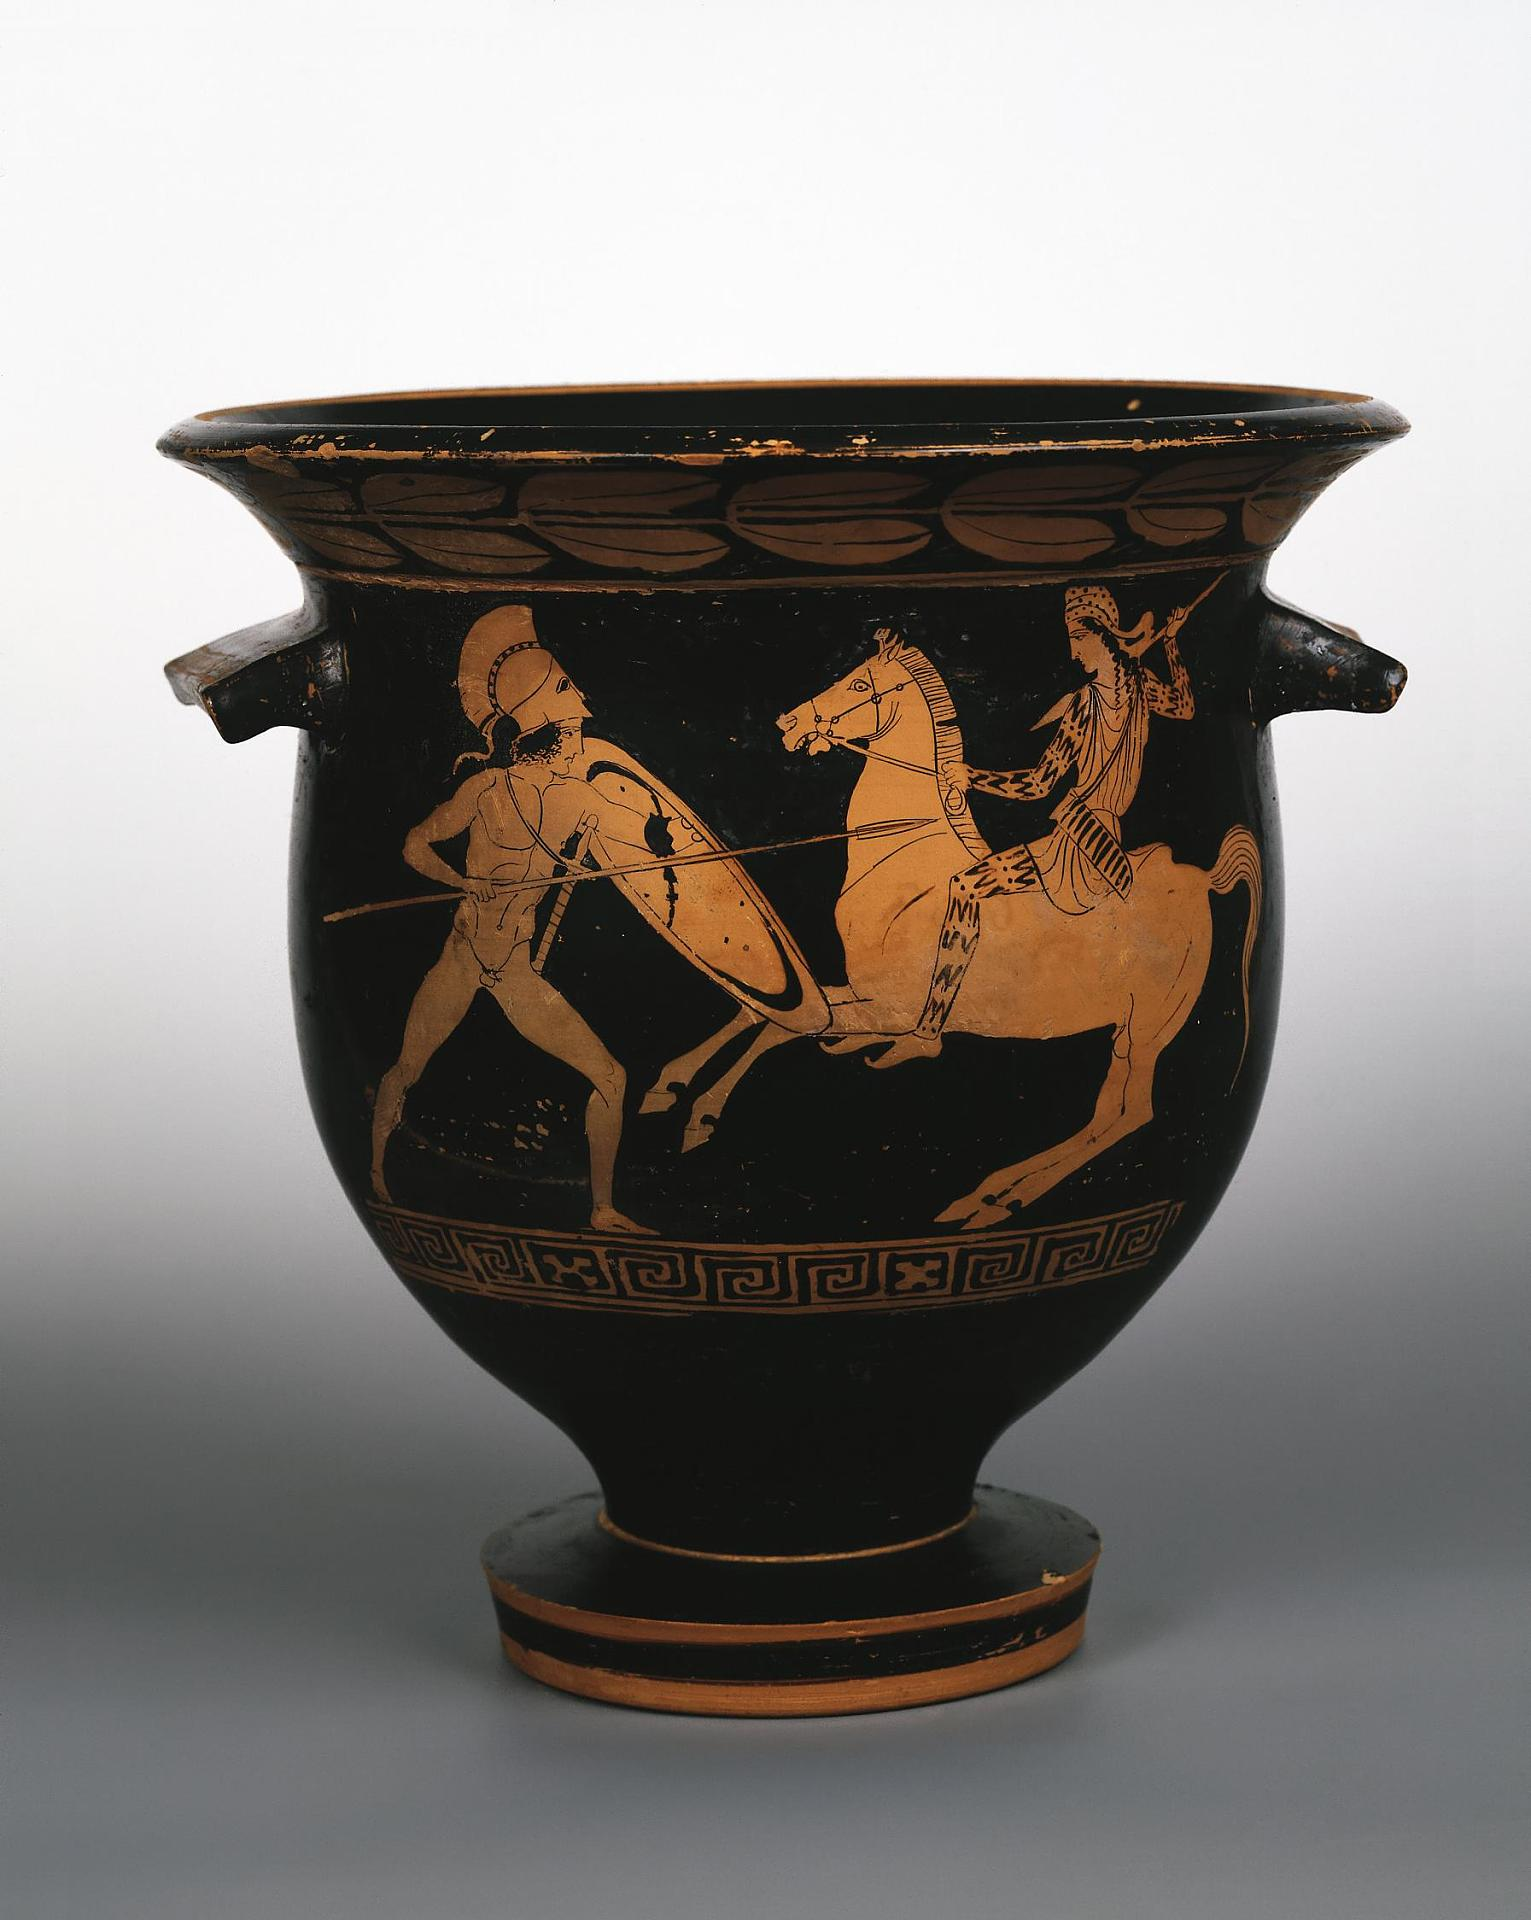 Red-figured Krater showing a Warrior and an Amazon, 430-420 BC, Apulia